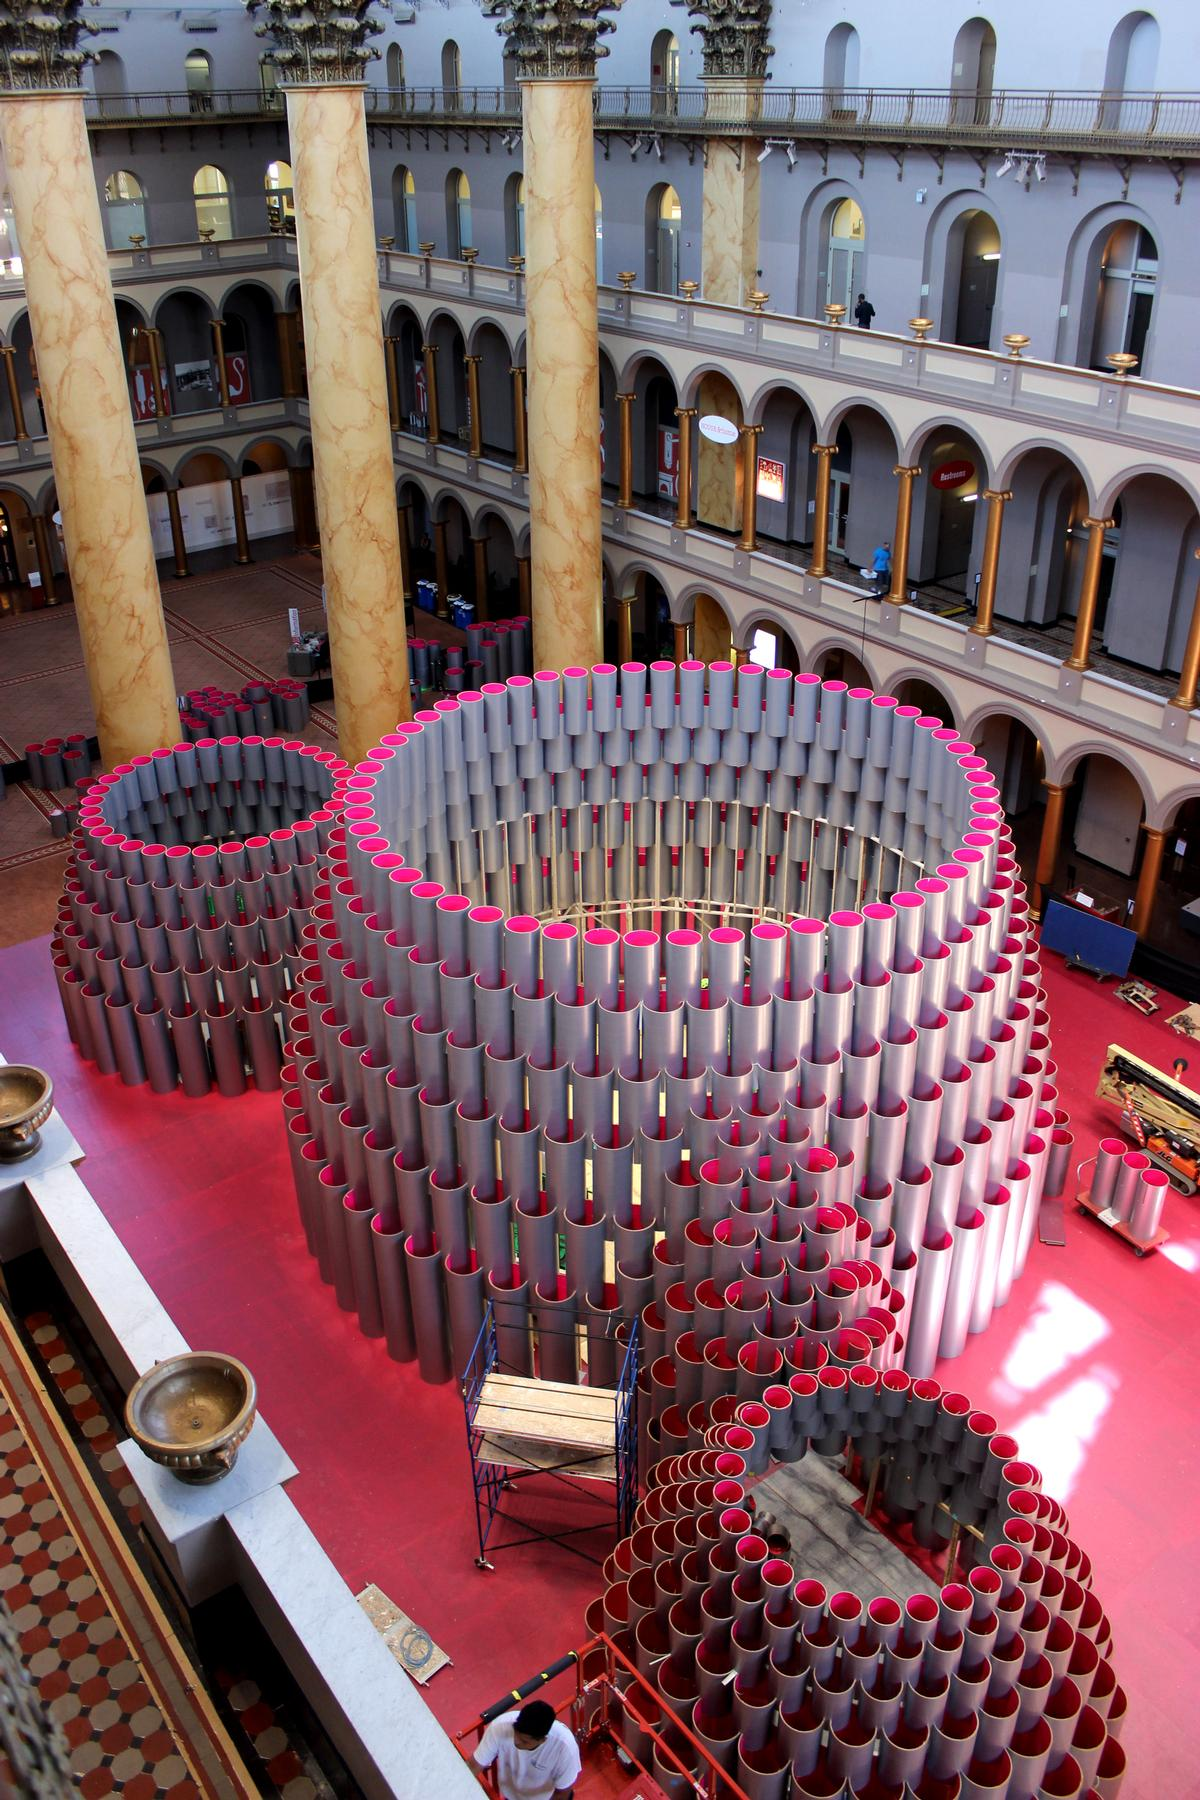 The Hive, mid-way through construction / National Building Museum